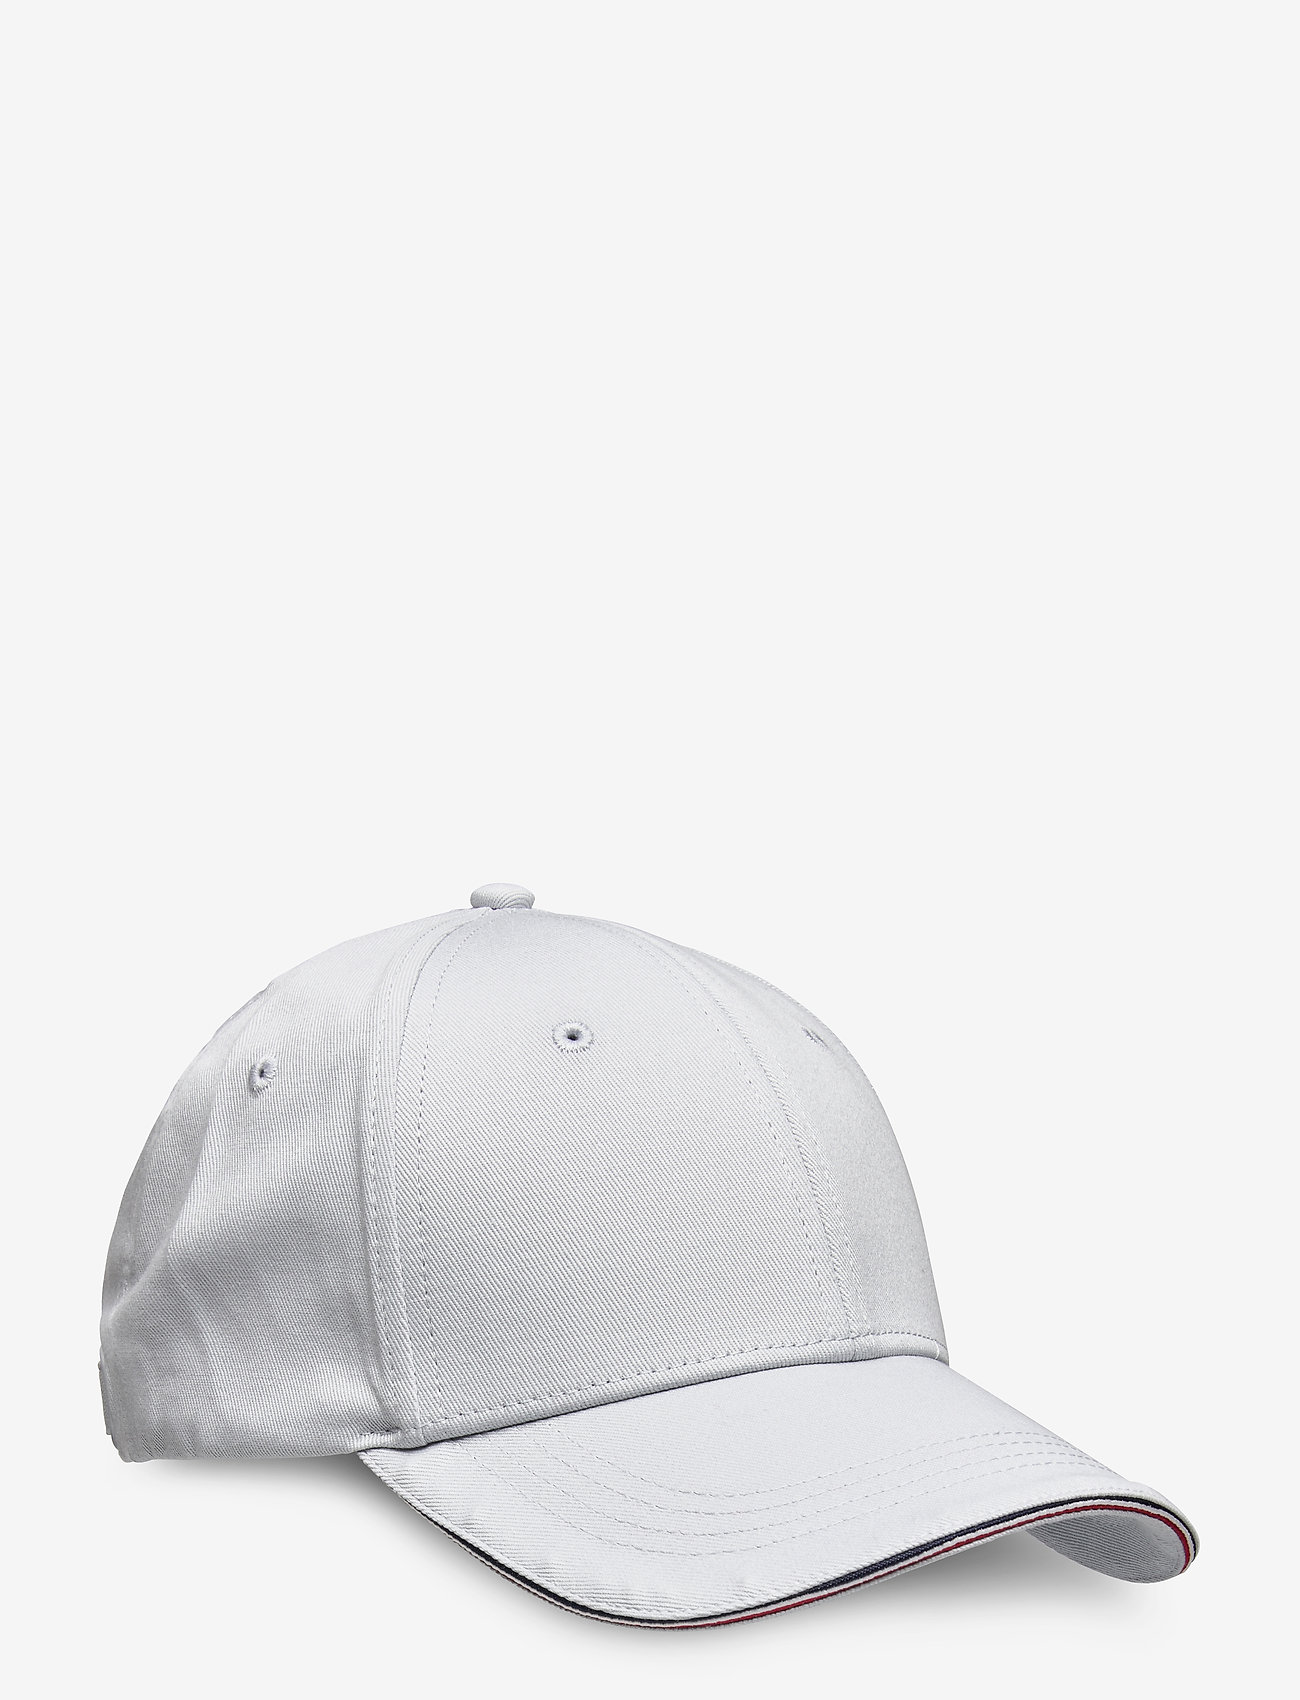 Tommy Hilfiger - ELEVATED CORPORATE CAP - casquettes - light cast - 0